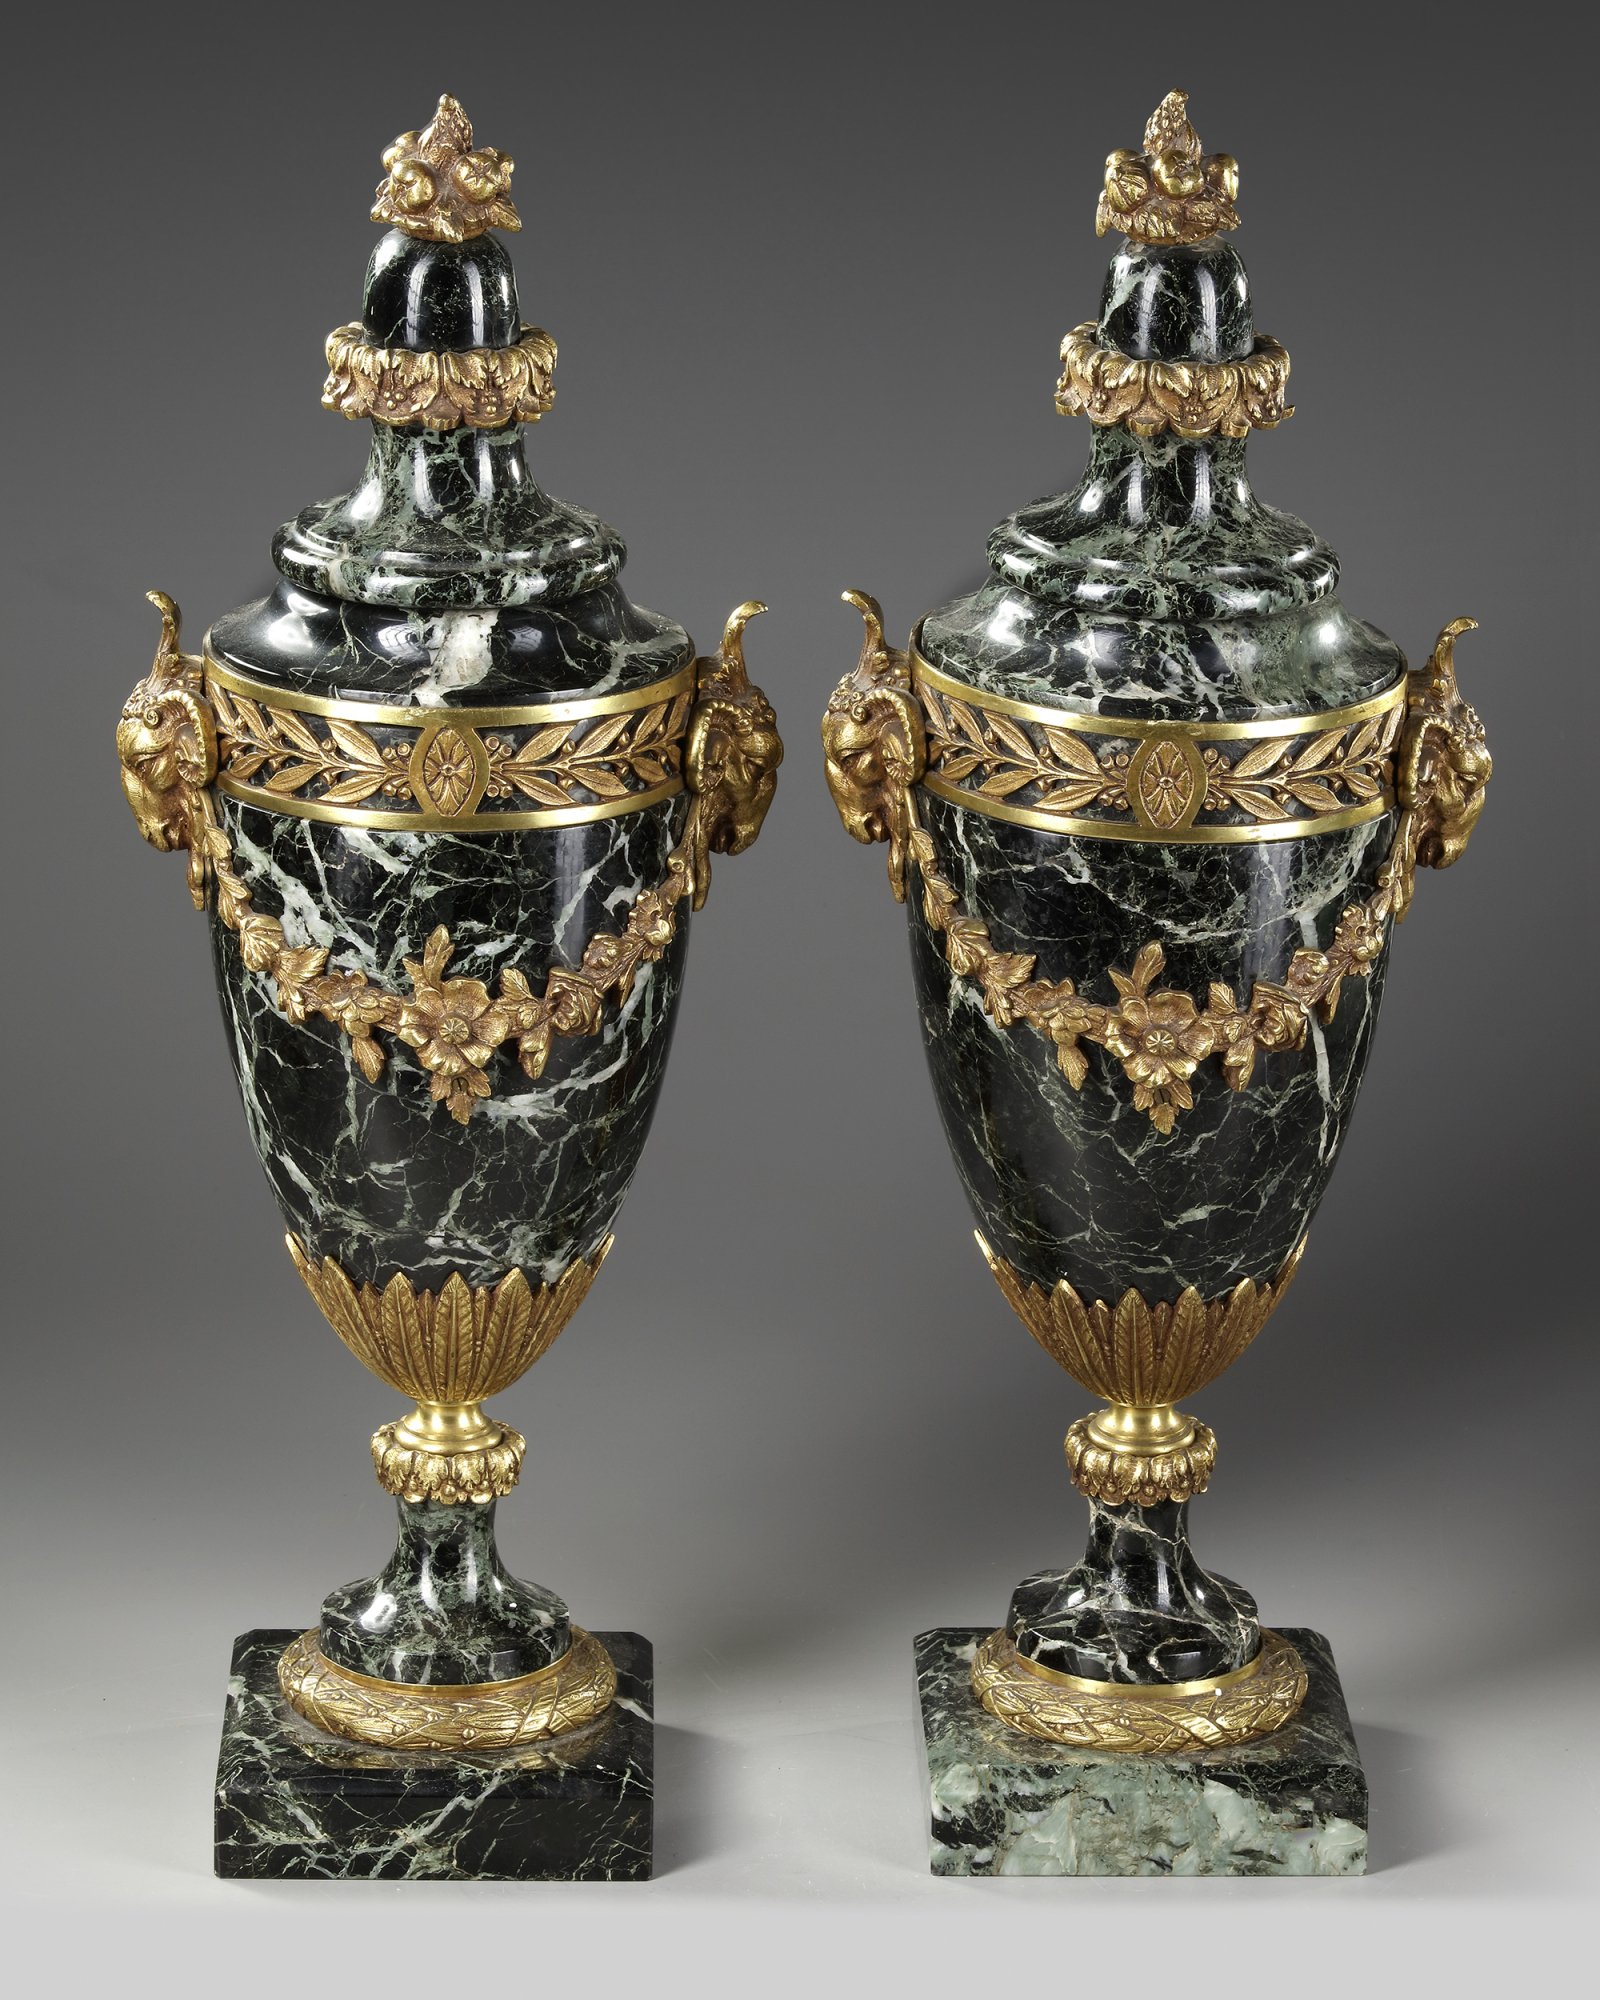 A PAIR OF MARBLE CASSOLETTES, FRANCE, 19TH CENTURY - Image 3 of 3